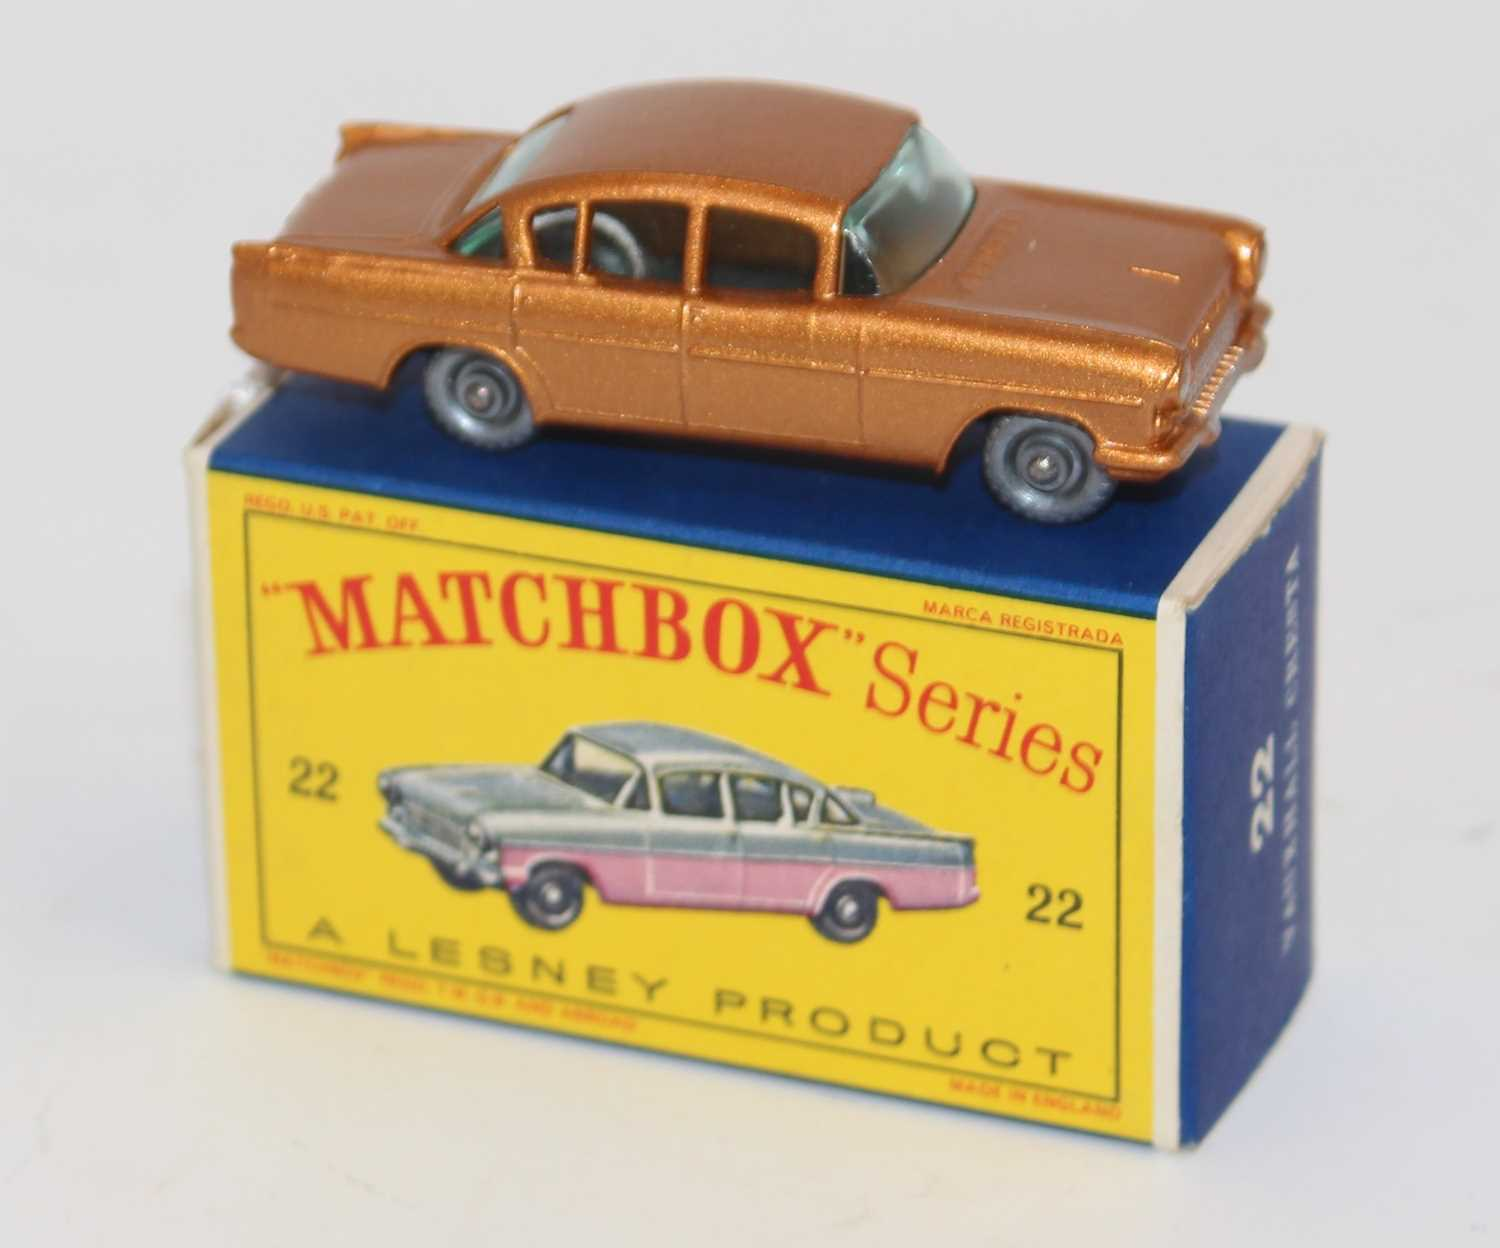 A Matchbox No.22 1958 Vauxhall Cresta comprising of metallic copper body with black base and - Image 2 of 2